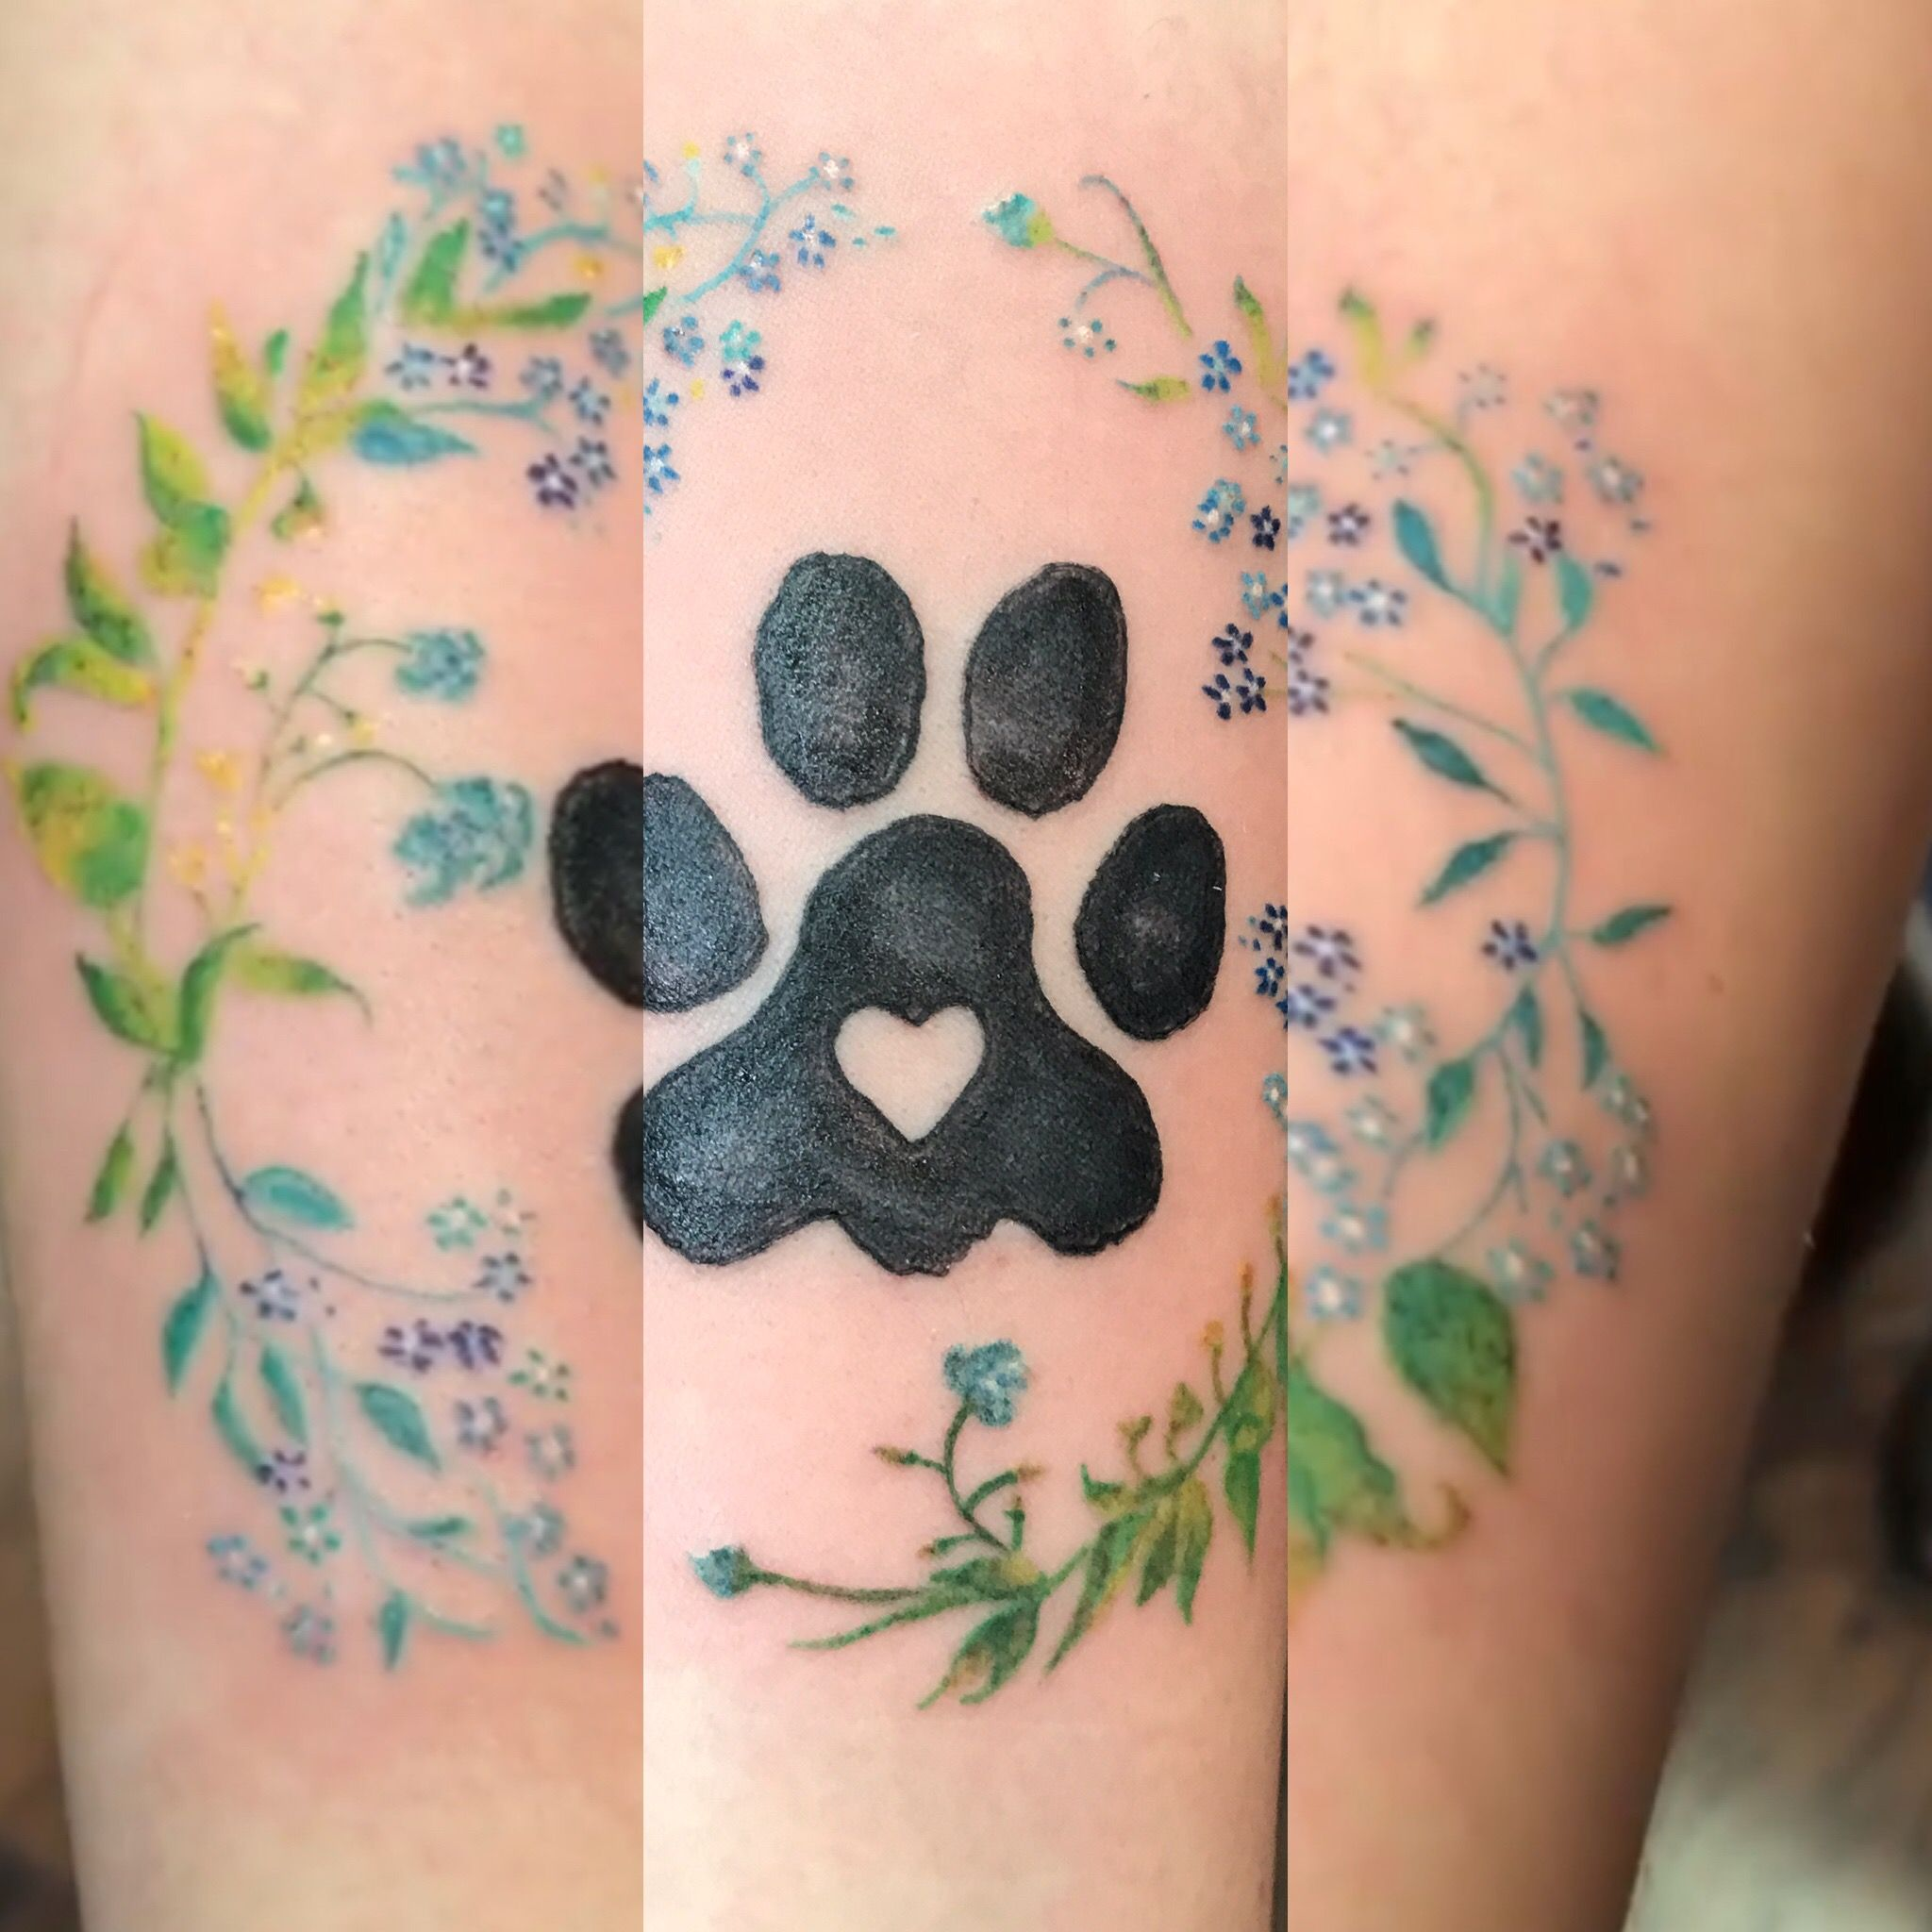 Paw Print Tattoos With Flowers: Petite Delicate Flowers With Paw Print Custom Tattoo